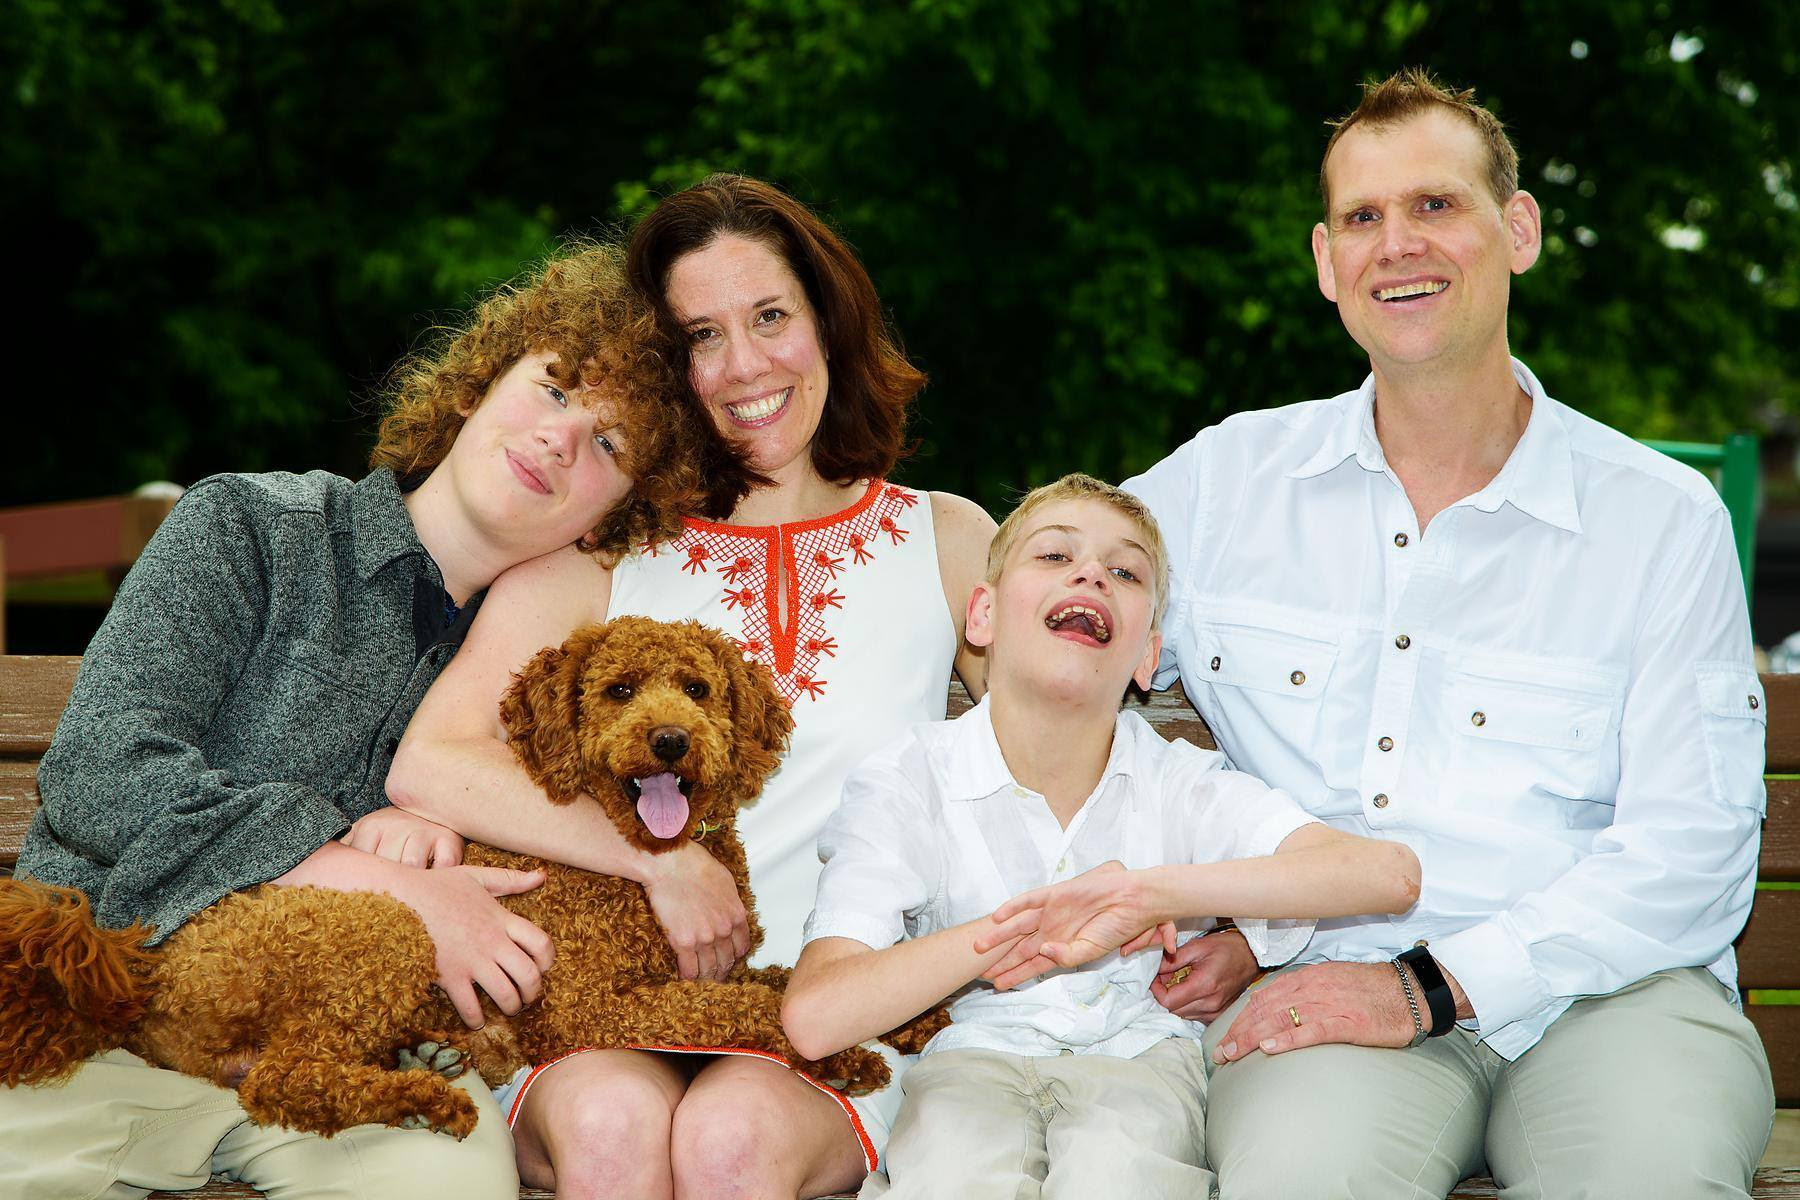 A family sitting on a bench. One son on the left is having curly red hair and a cute labradoodle on his lap. Next to him is his mom, a woman with brown hair who smiles brightly. Next to her, the younger son who wears a white shirt. And on the right side is the dad wearing a white shirt as well.